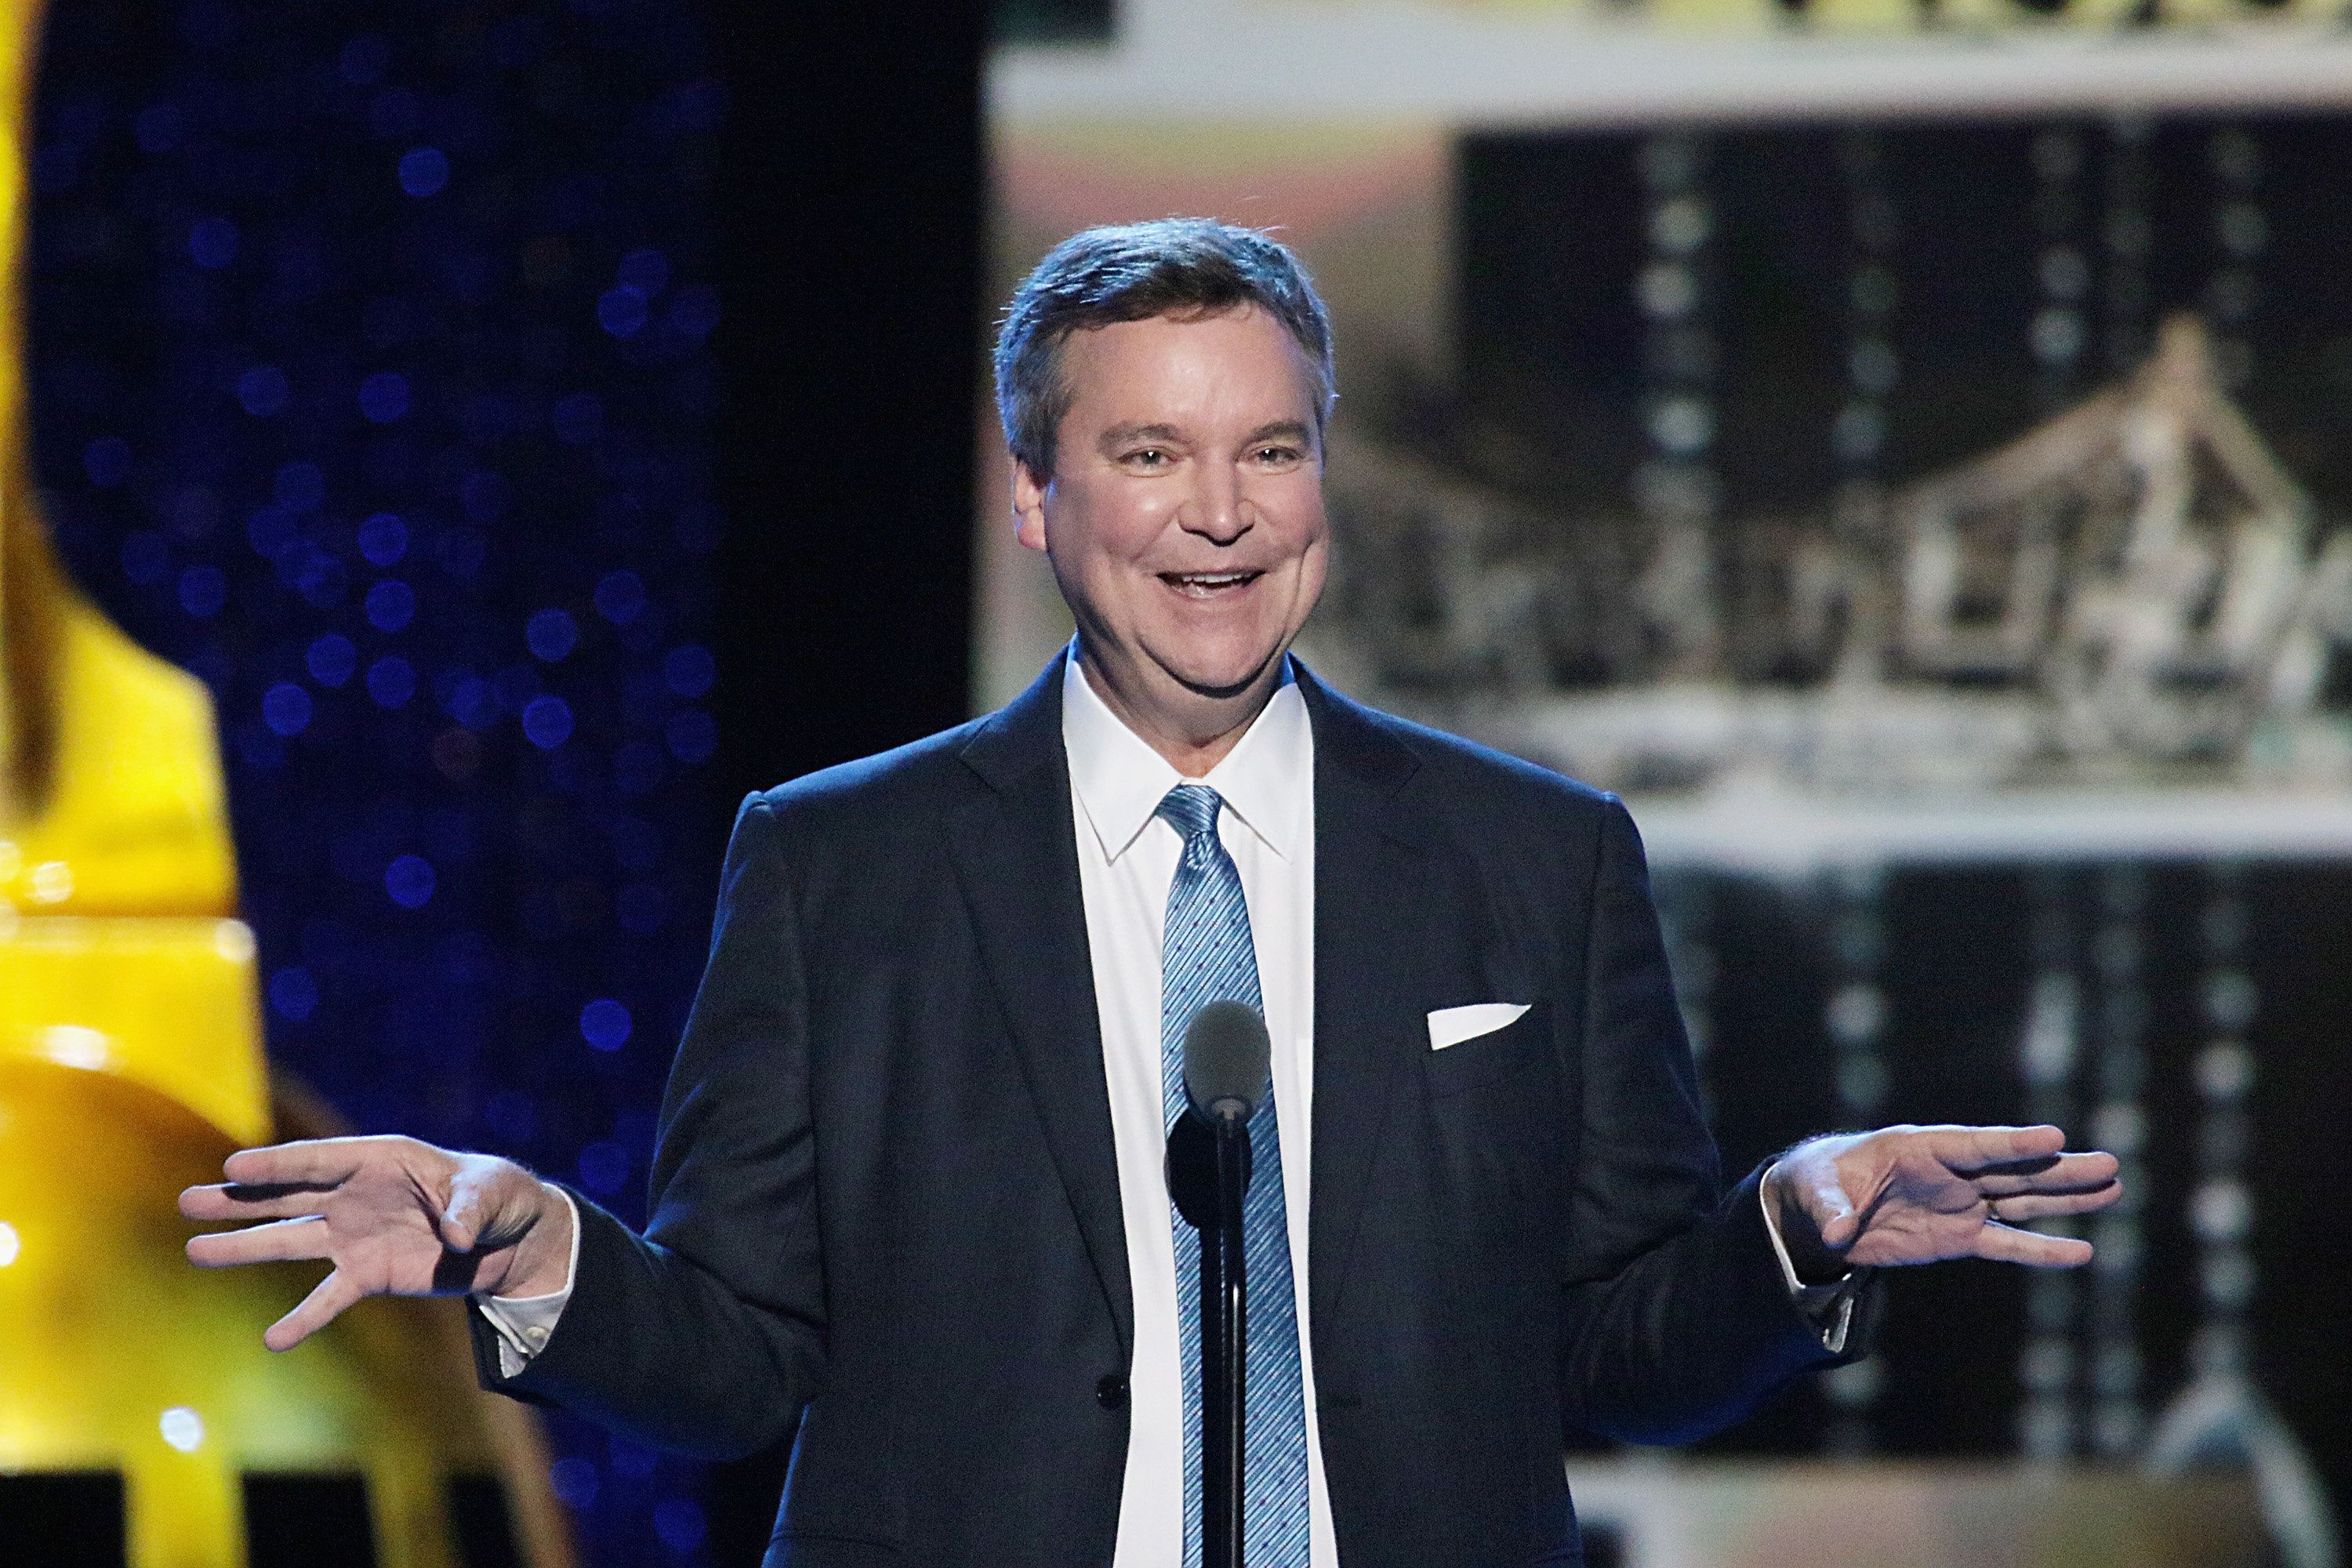 Sam Haskell has helped Miss America regain prominence after the institution struggled for several years. But emails tell